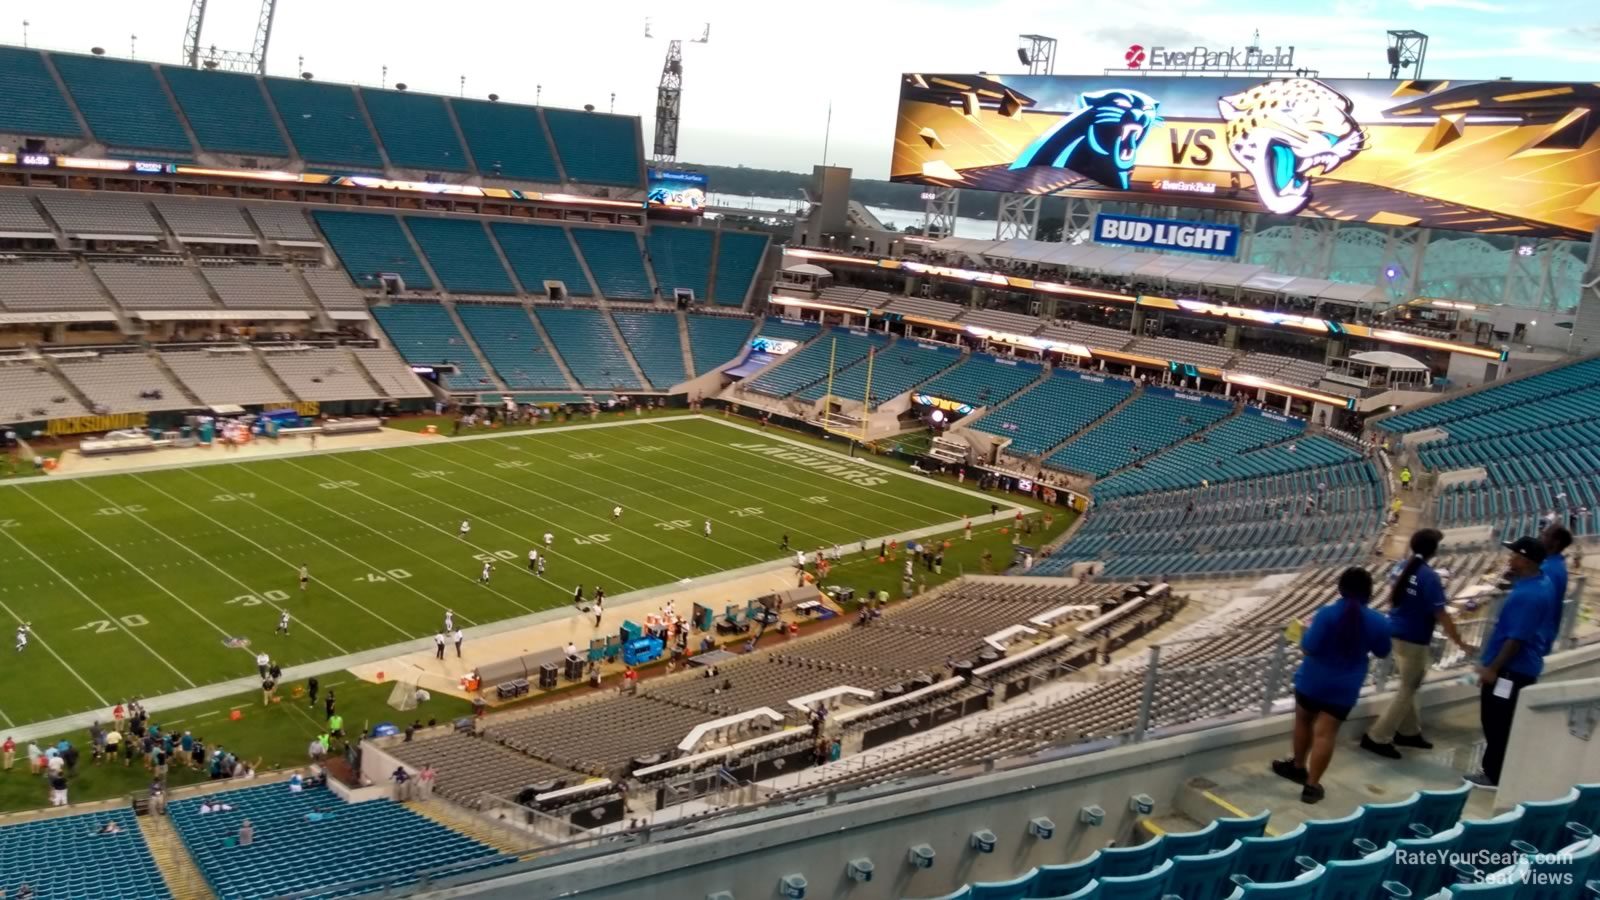 Section 414 seat view